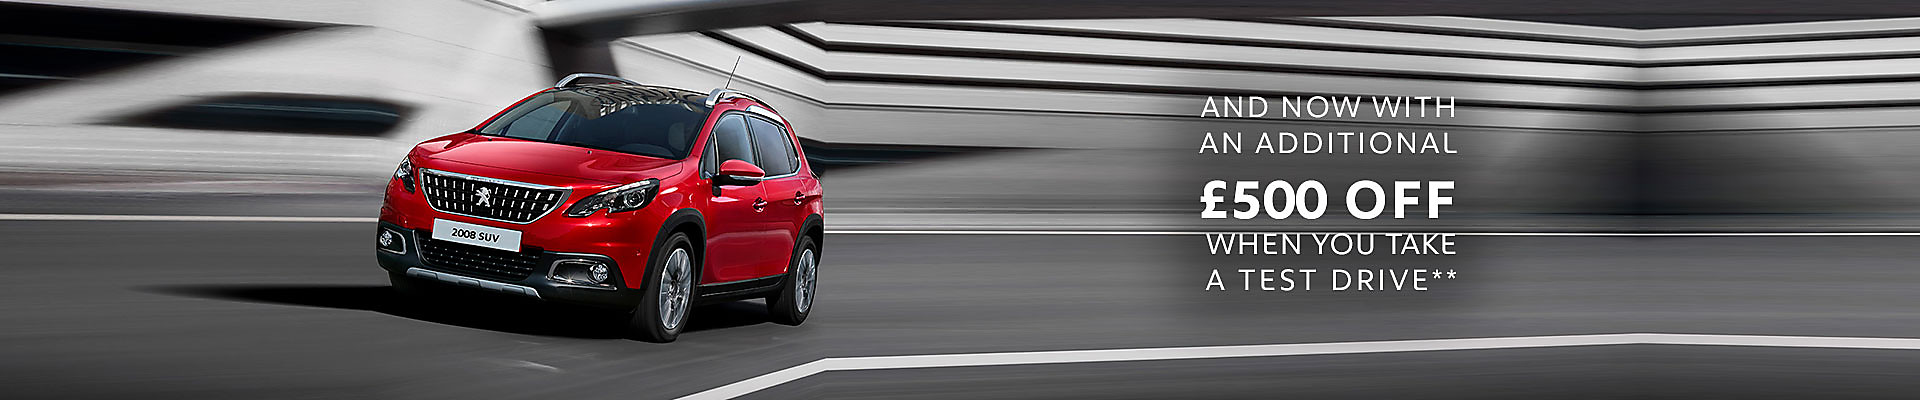 1920 Peugeot 2008 SUV save £500 Drive Test Customer Saving